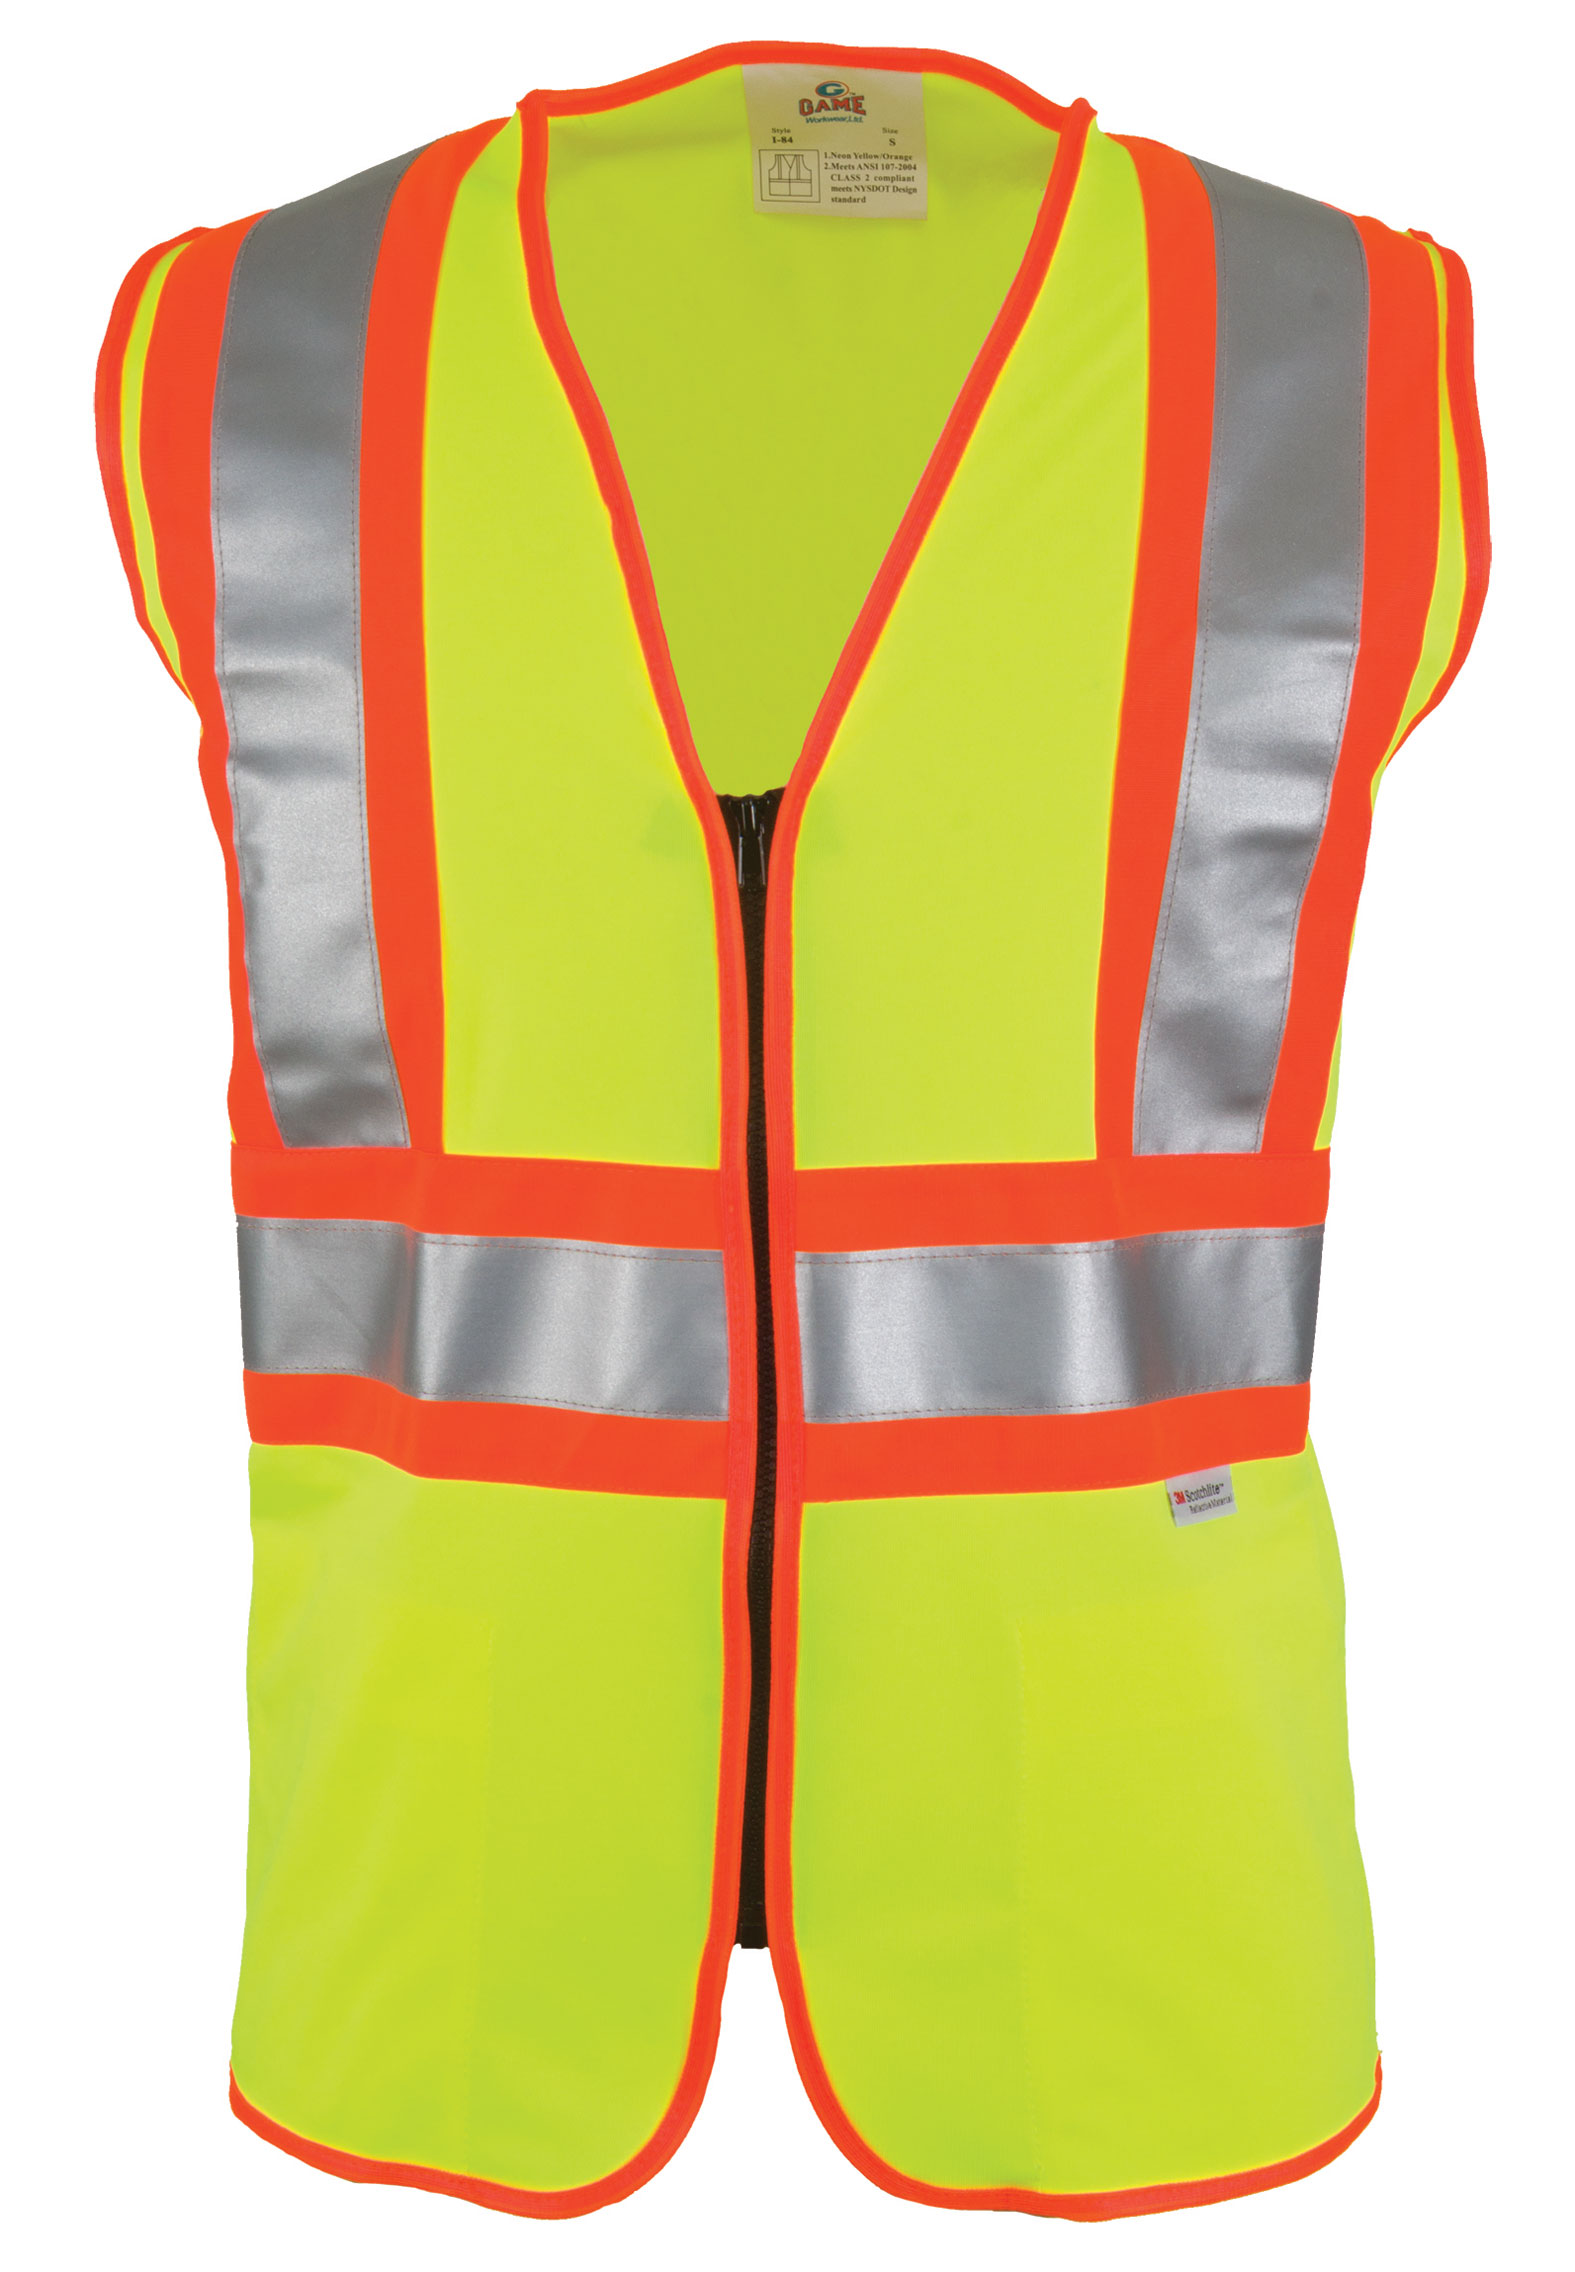 The D.O.T. ANSI/ISEA Compliant Vest